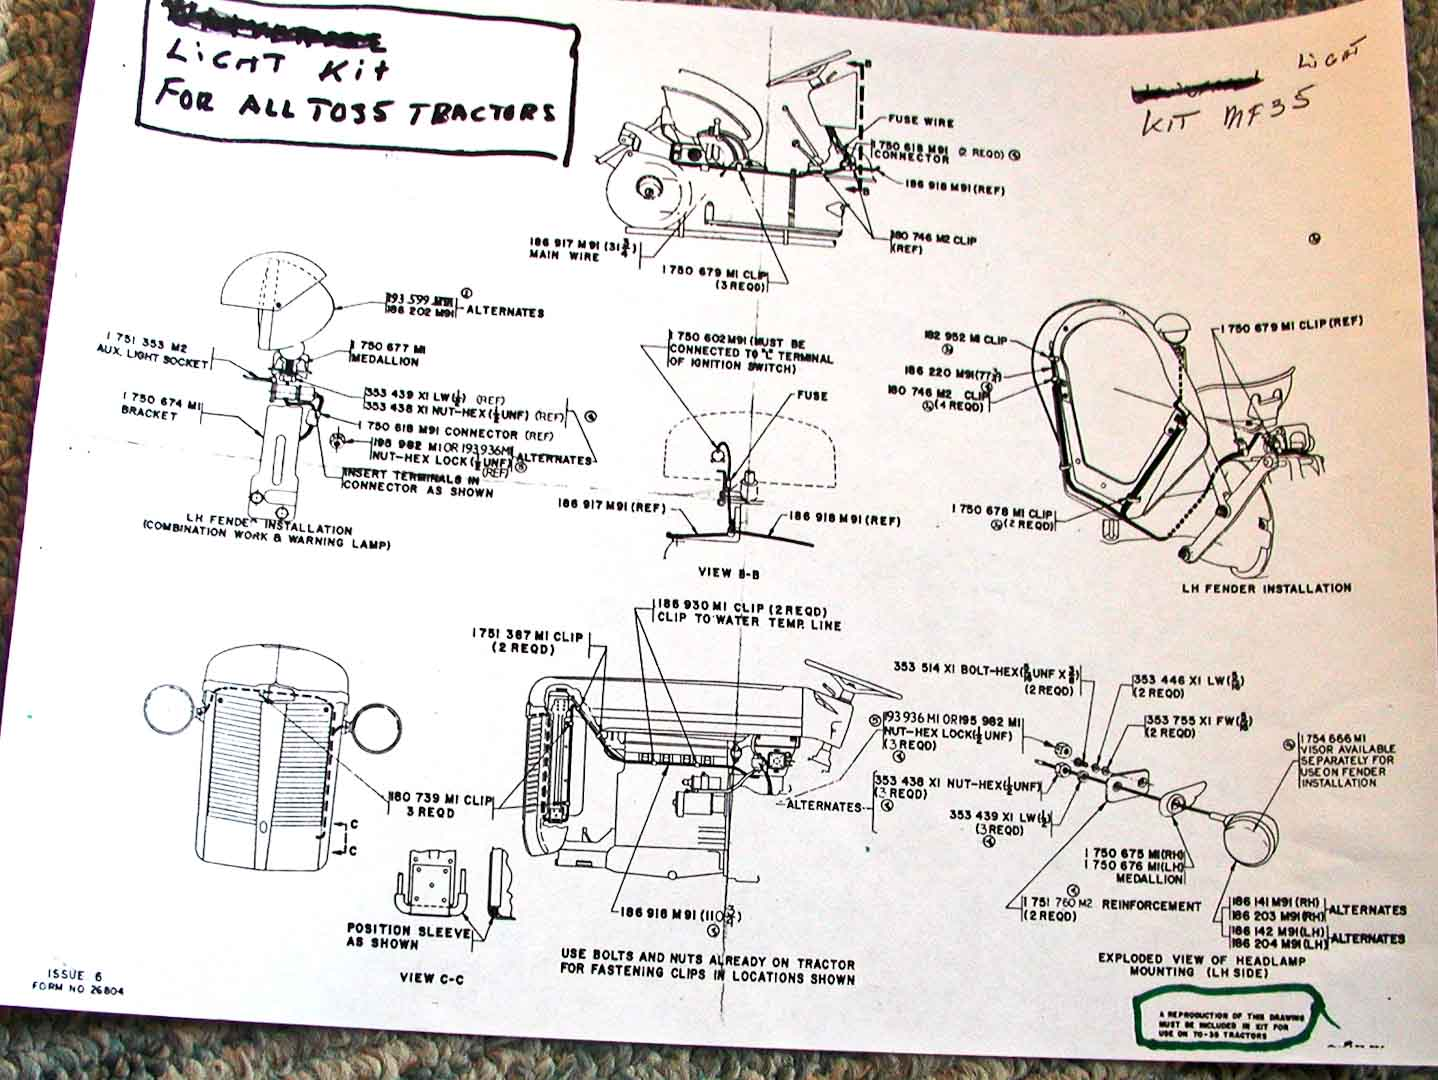 Mf 35 Wiring Diagram - Wiring Schematics North America Plug Wiring Diagram on